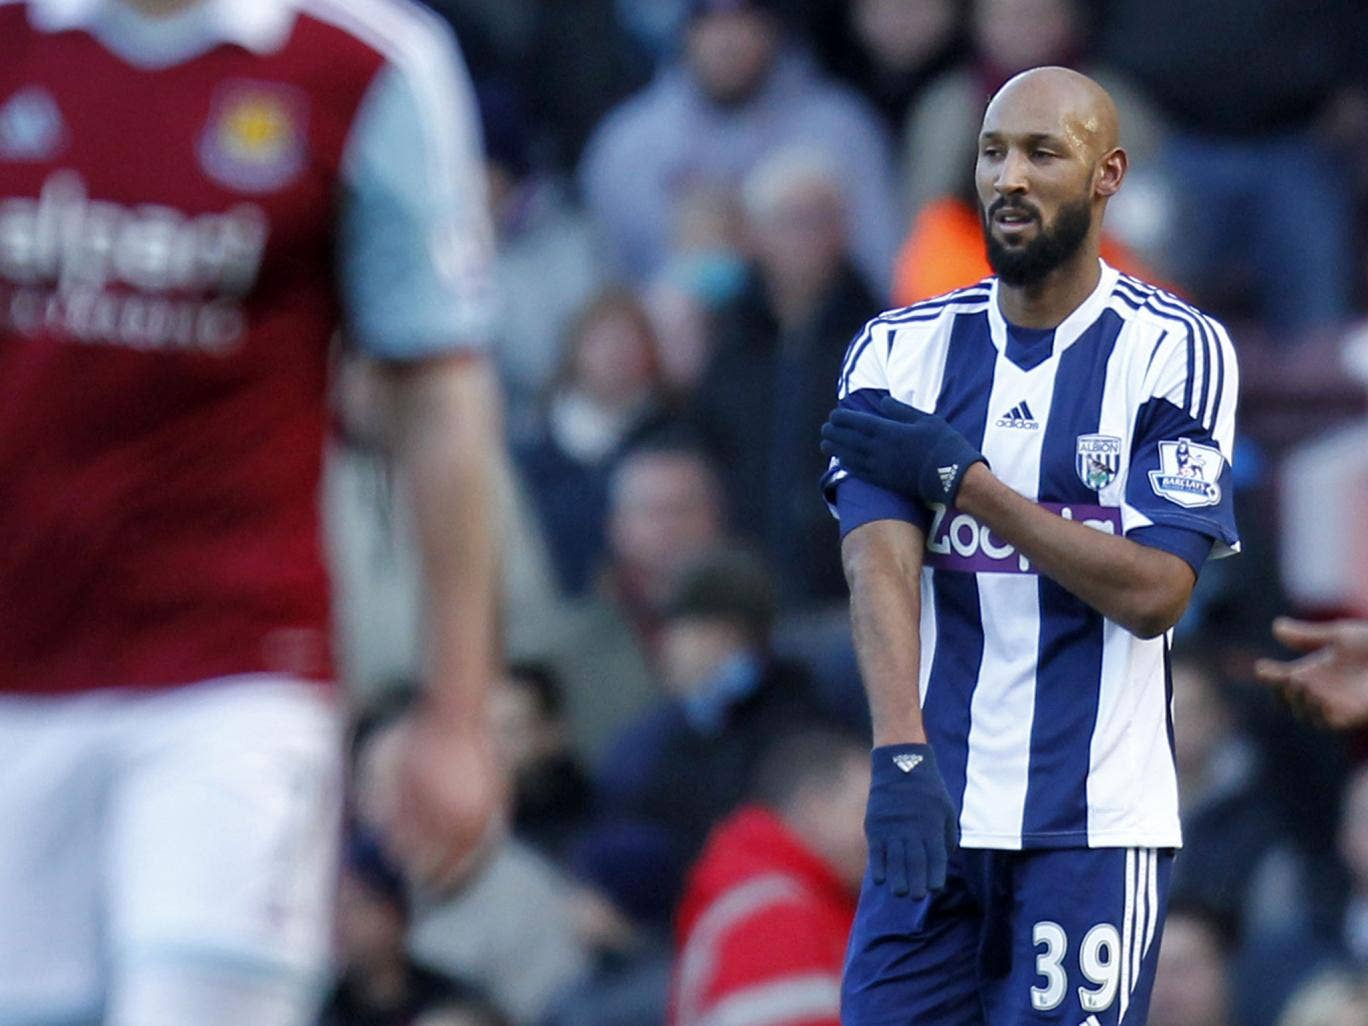 West Bromwich Albion's French striker Nicolas Anelka gestures as he celebrates scoring their second goal against West Ham United